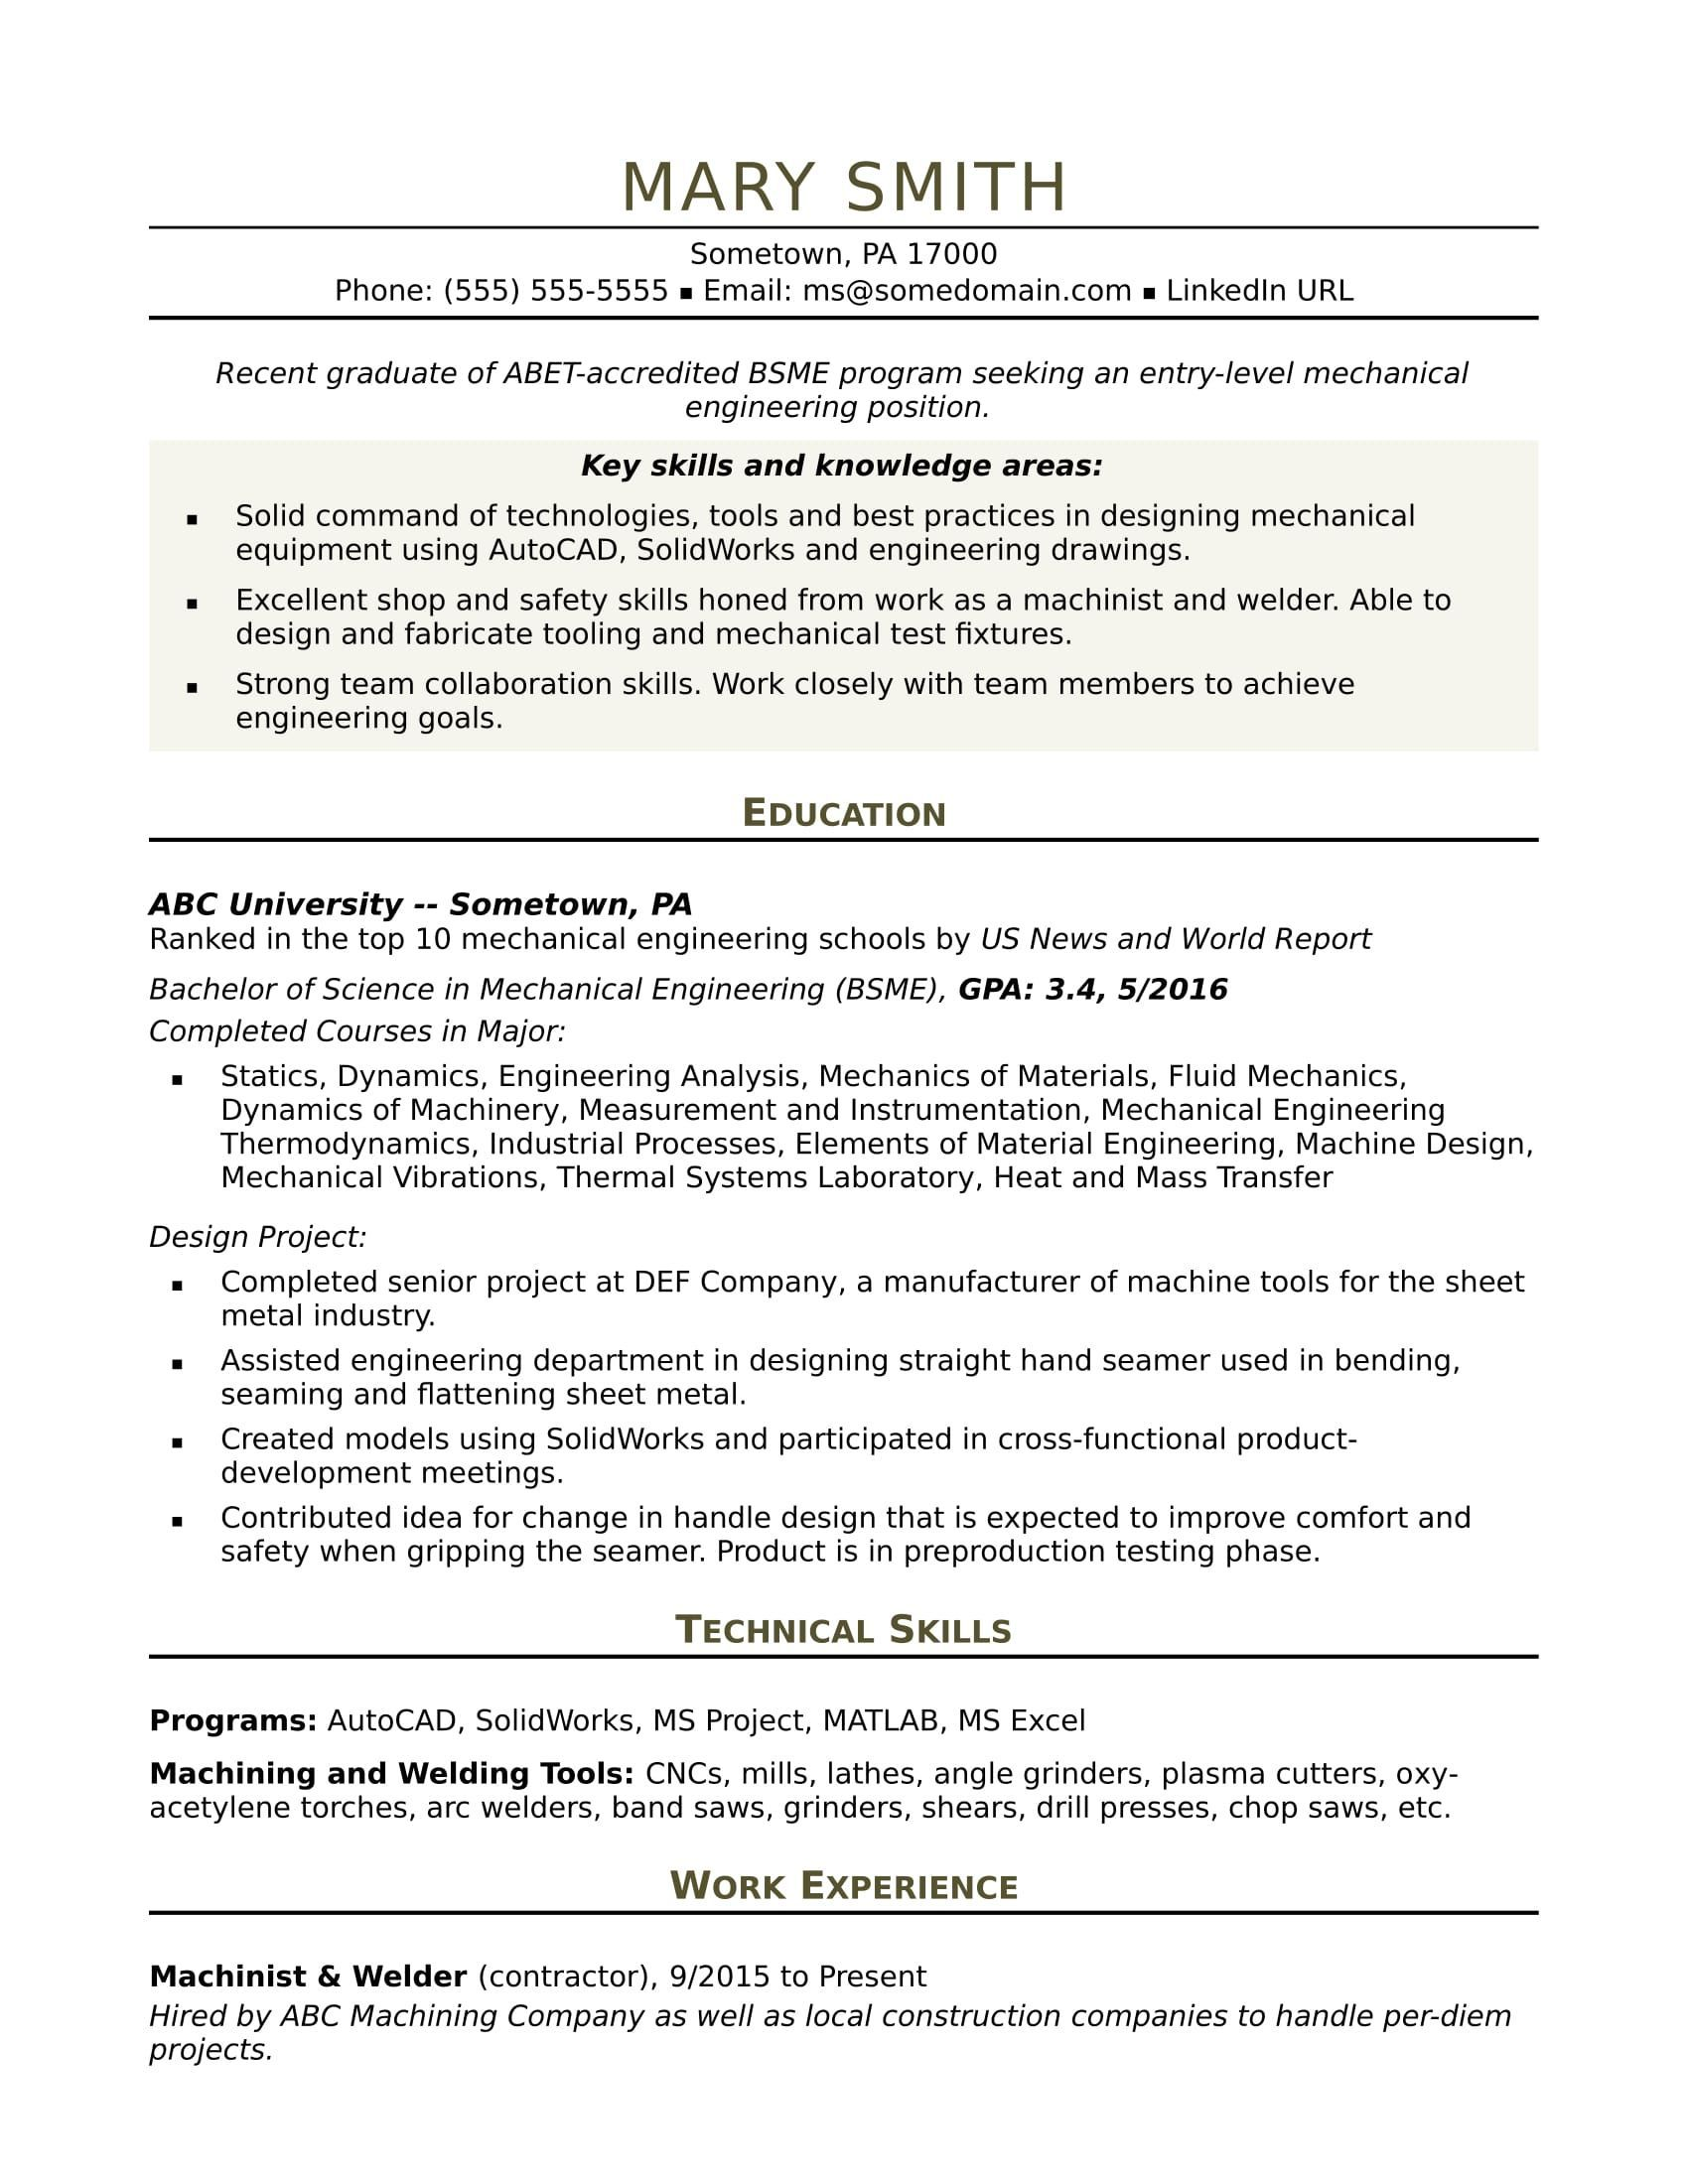 Grinder Sample Resumes Simple Sample Resume For An Entrylevel Mechanical Engineer .